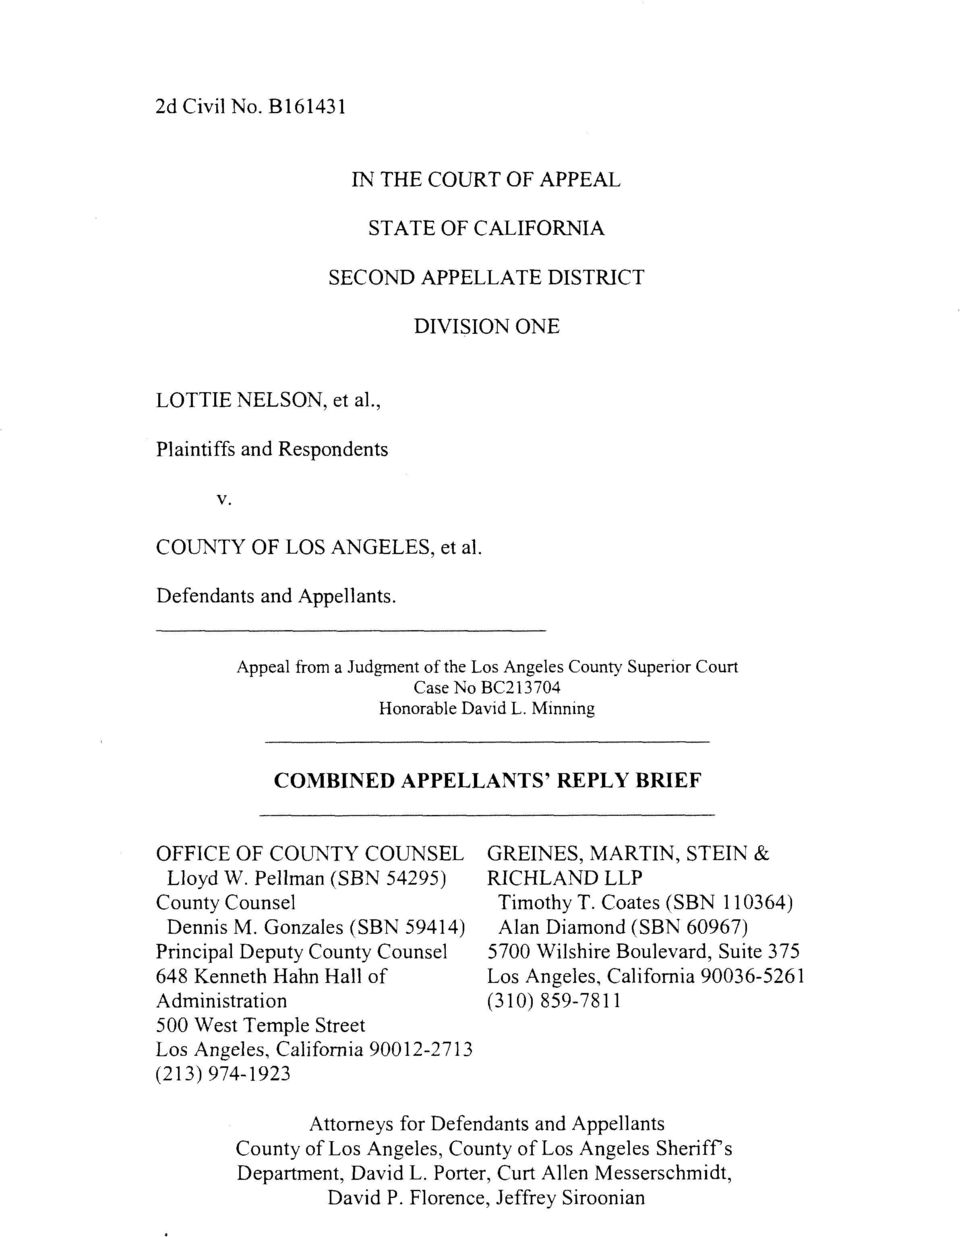 Minning COMBINED APPELLANTS' REPLY BRIEF OFFICE OF COUNTY COUNSEL GREINES, MARTIN, STEIN & Lloyd W. Peliman (SBN 54295) RICHLAND LLP County Counsel Timothy T. Coates (SBN 110364) Dennis M.